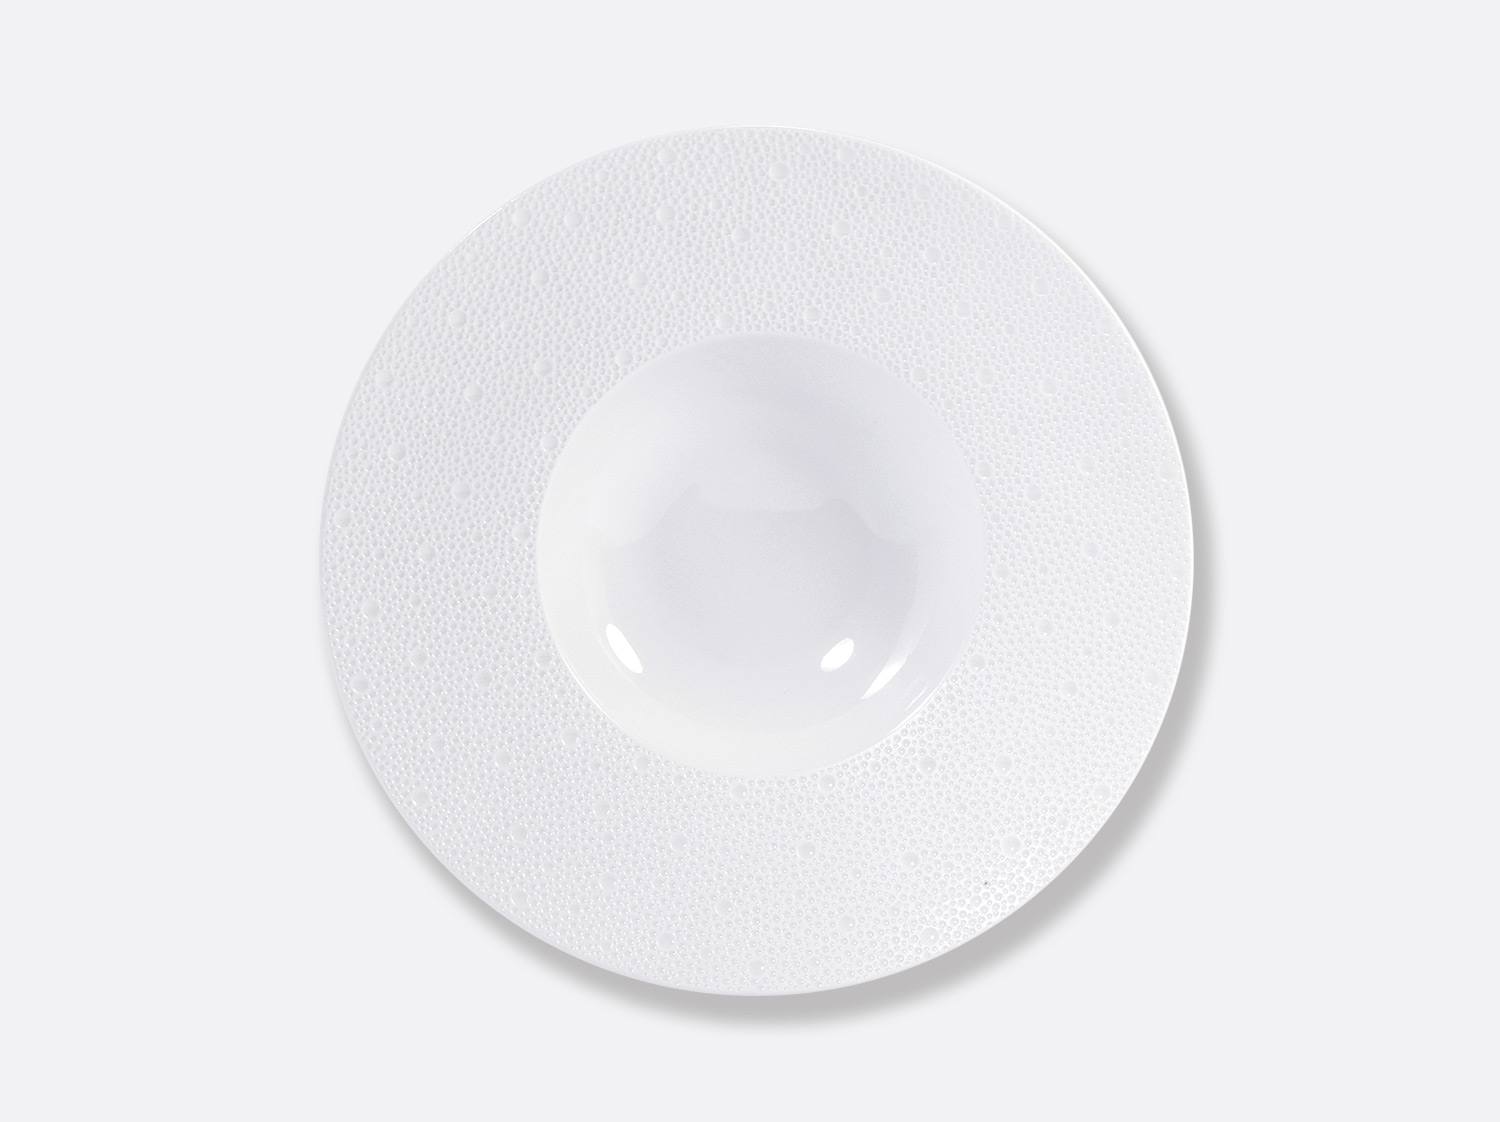 China ワイドリムスープ 27cm of the collection ECUME BLANC AILE MAT | Bernardaud